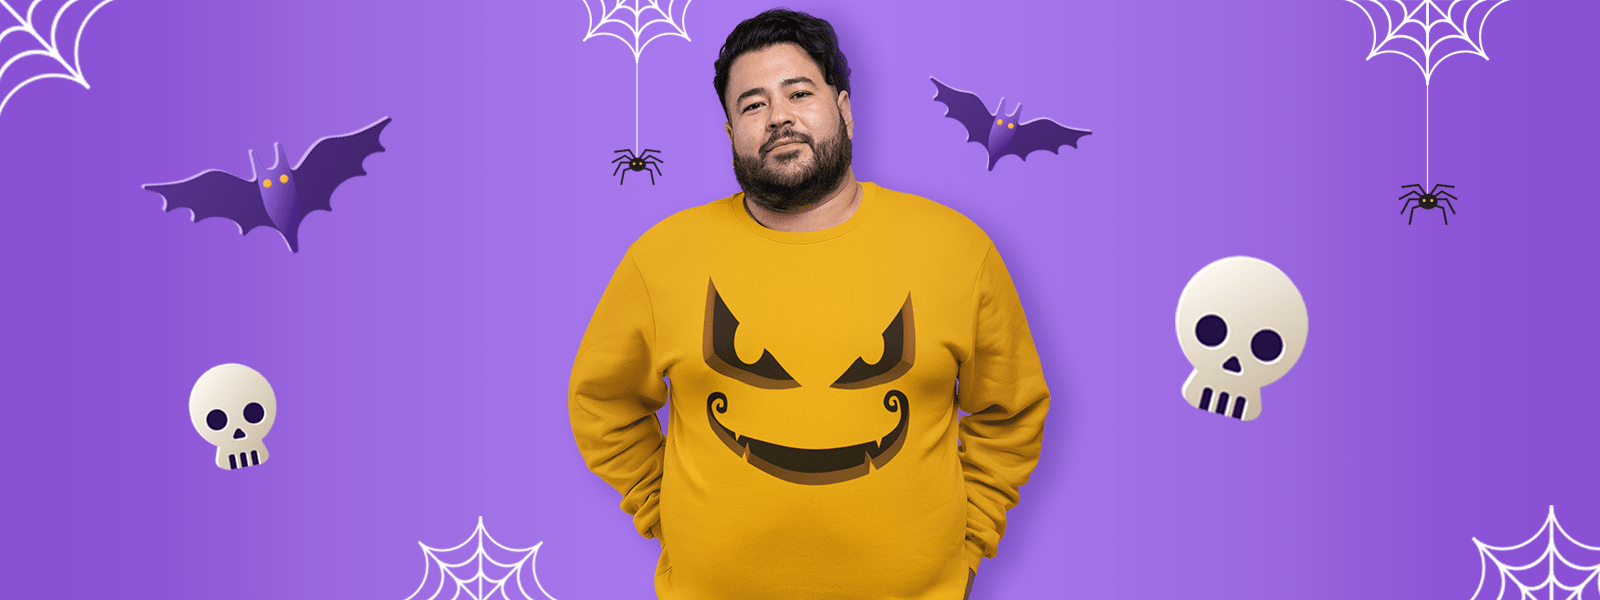 Spookiest Halloween Clothes and Apparel